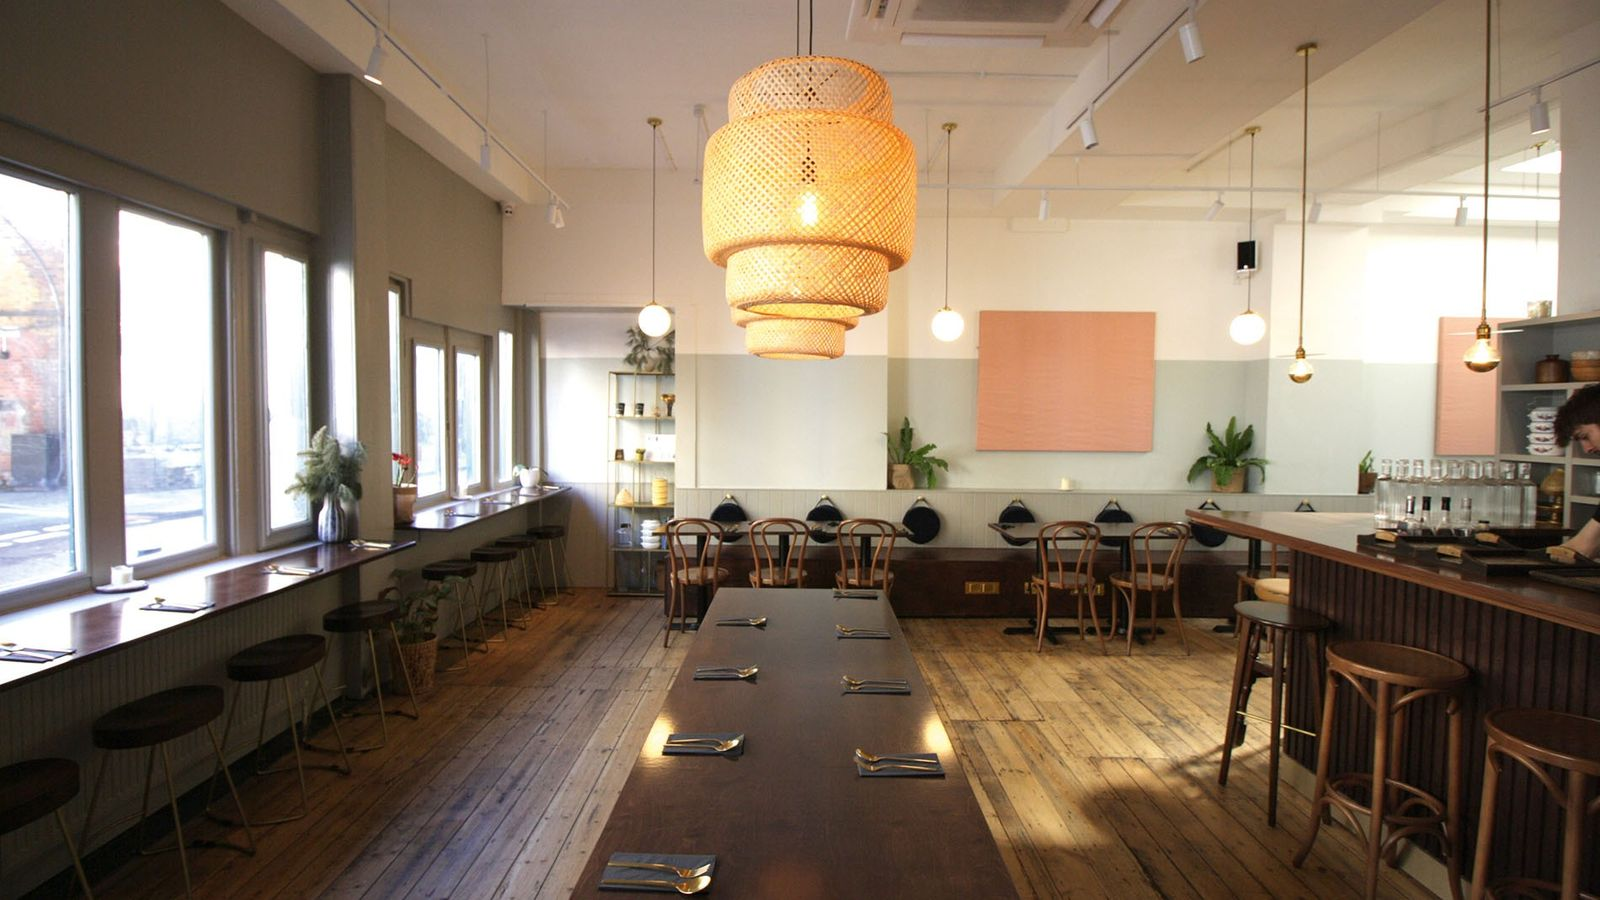 Dining room at Kin + Deum